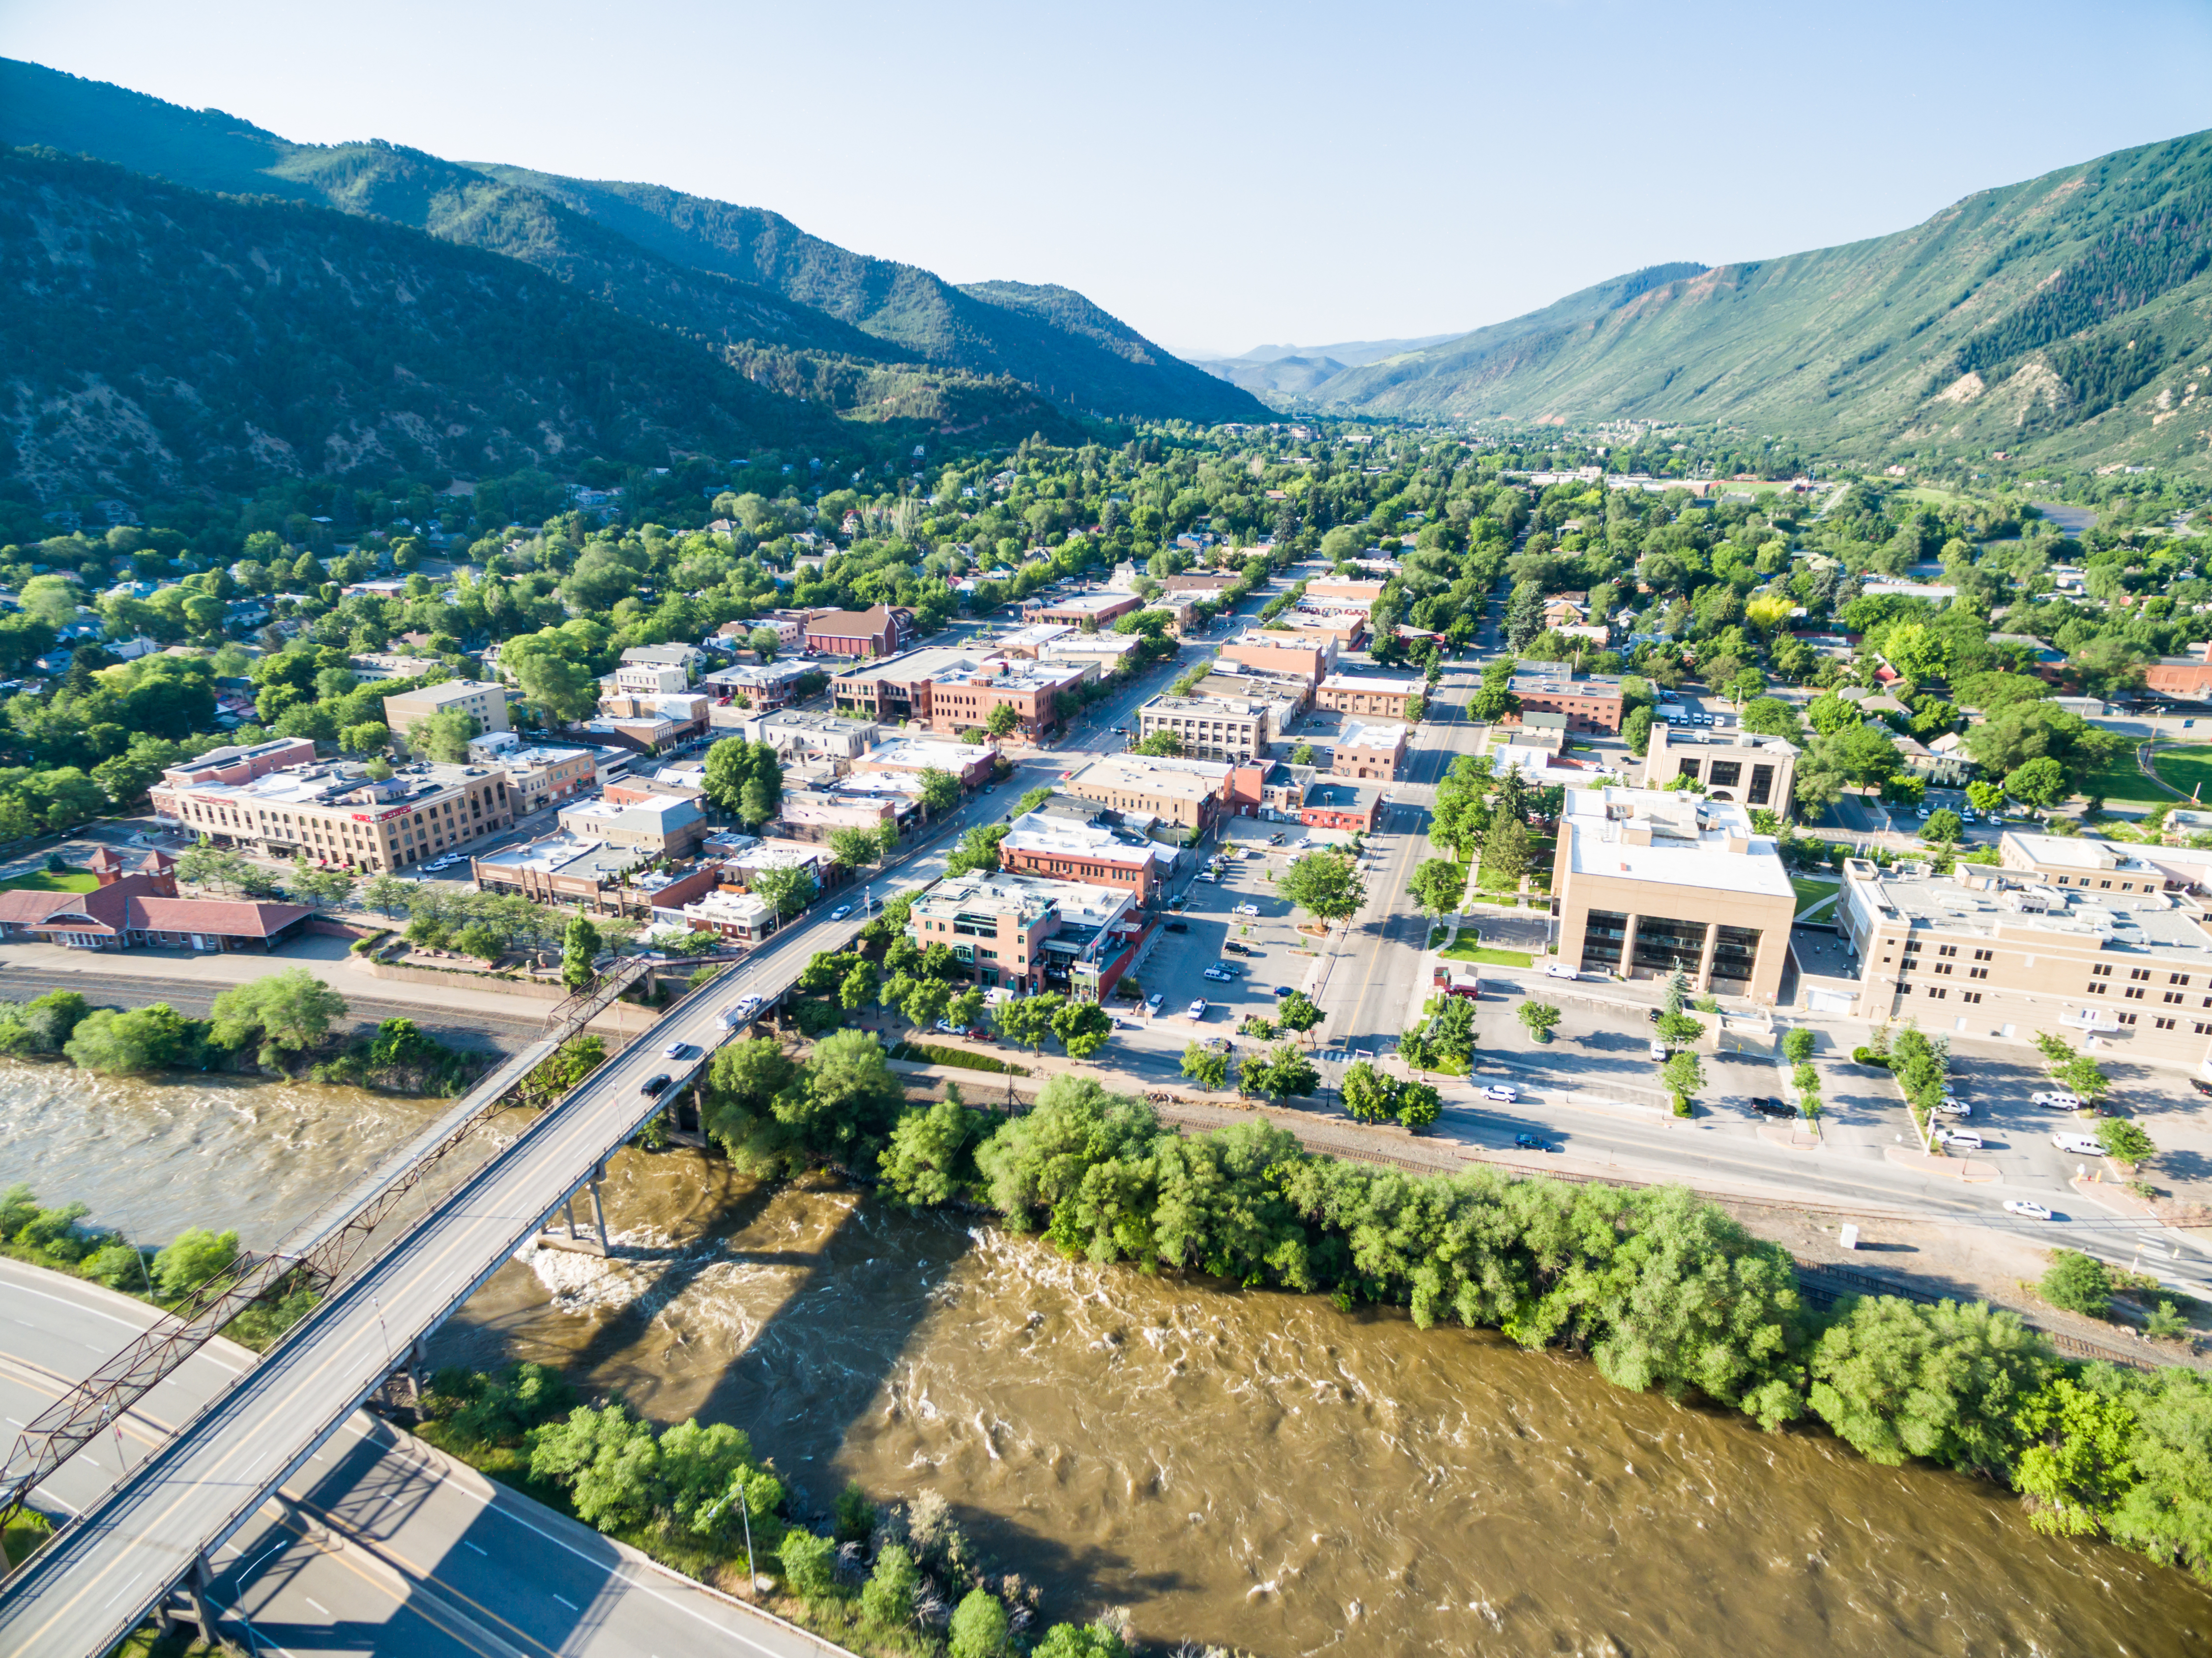 Glenwood Springs Colorado USA-June 20 2015. Aerial view of downtown Gleenwood Springs in the summer.